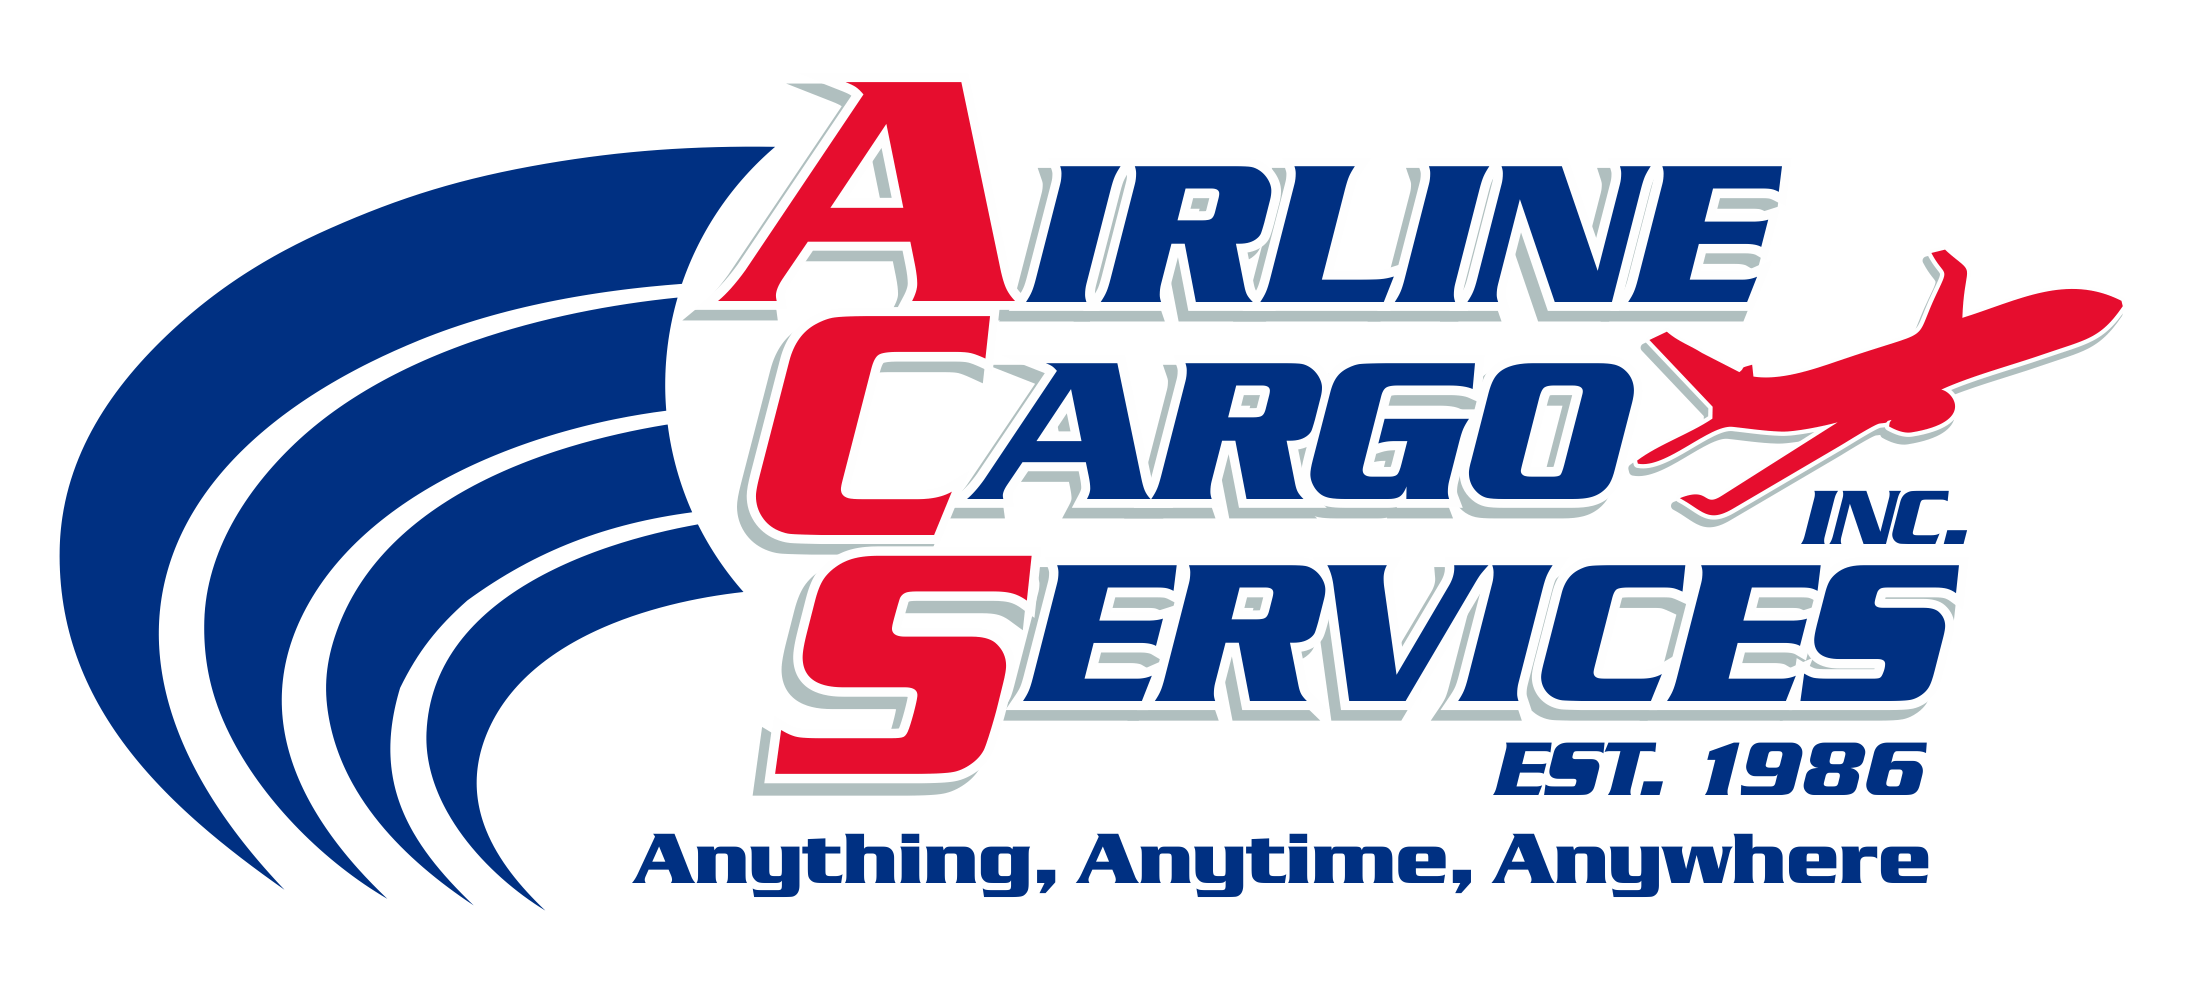 AIRLINE CARGO SERVICES INC